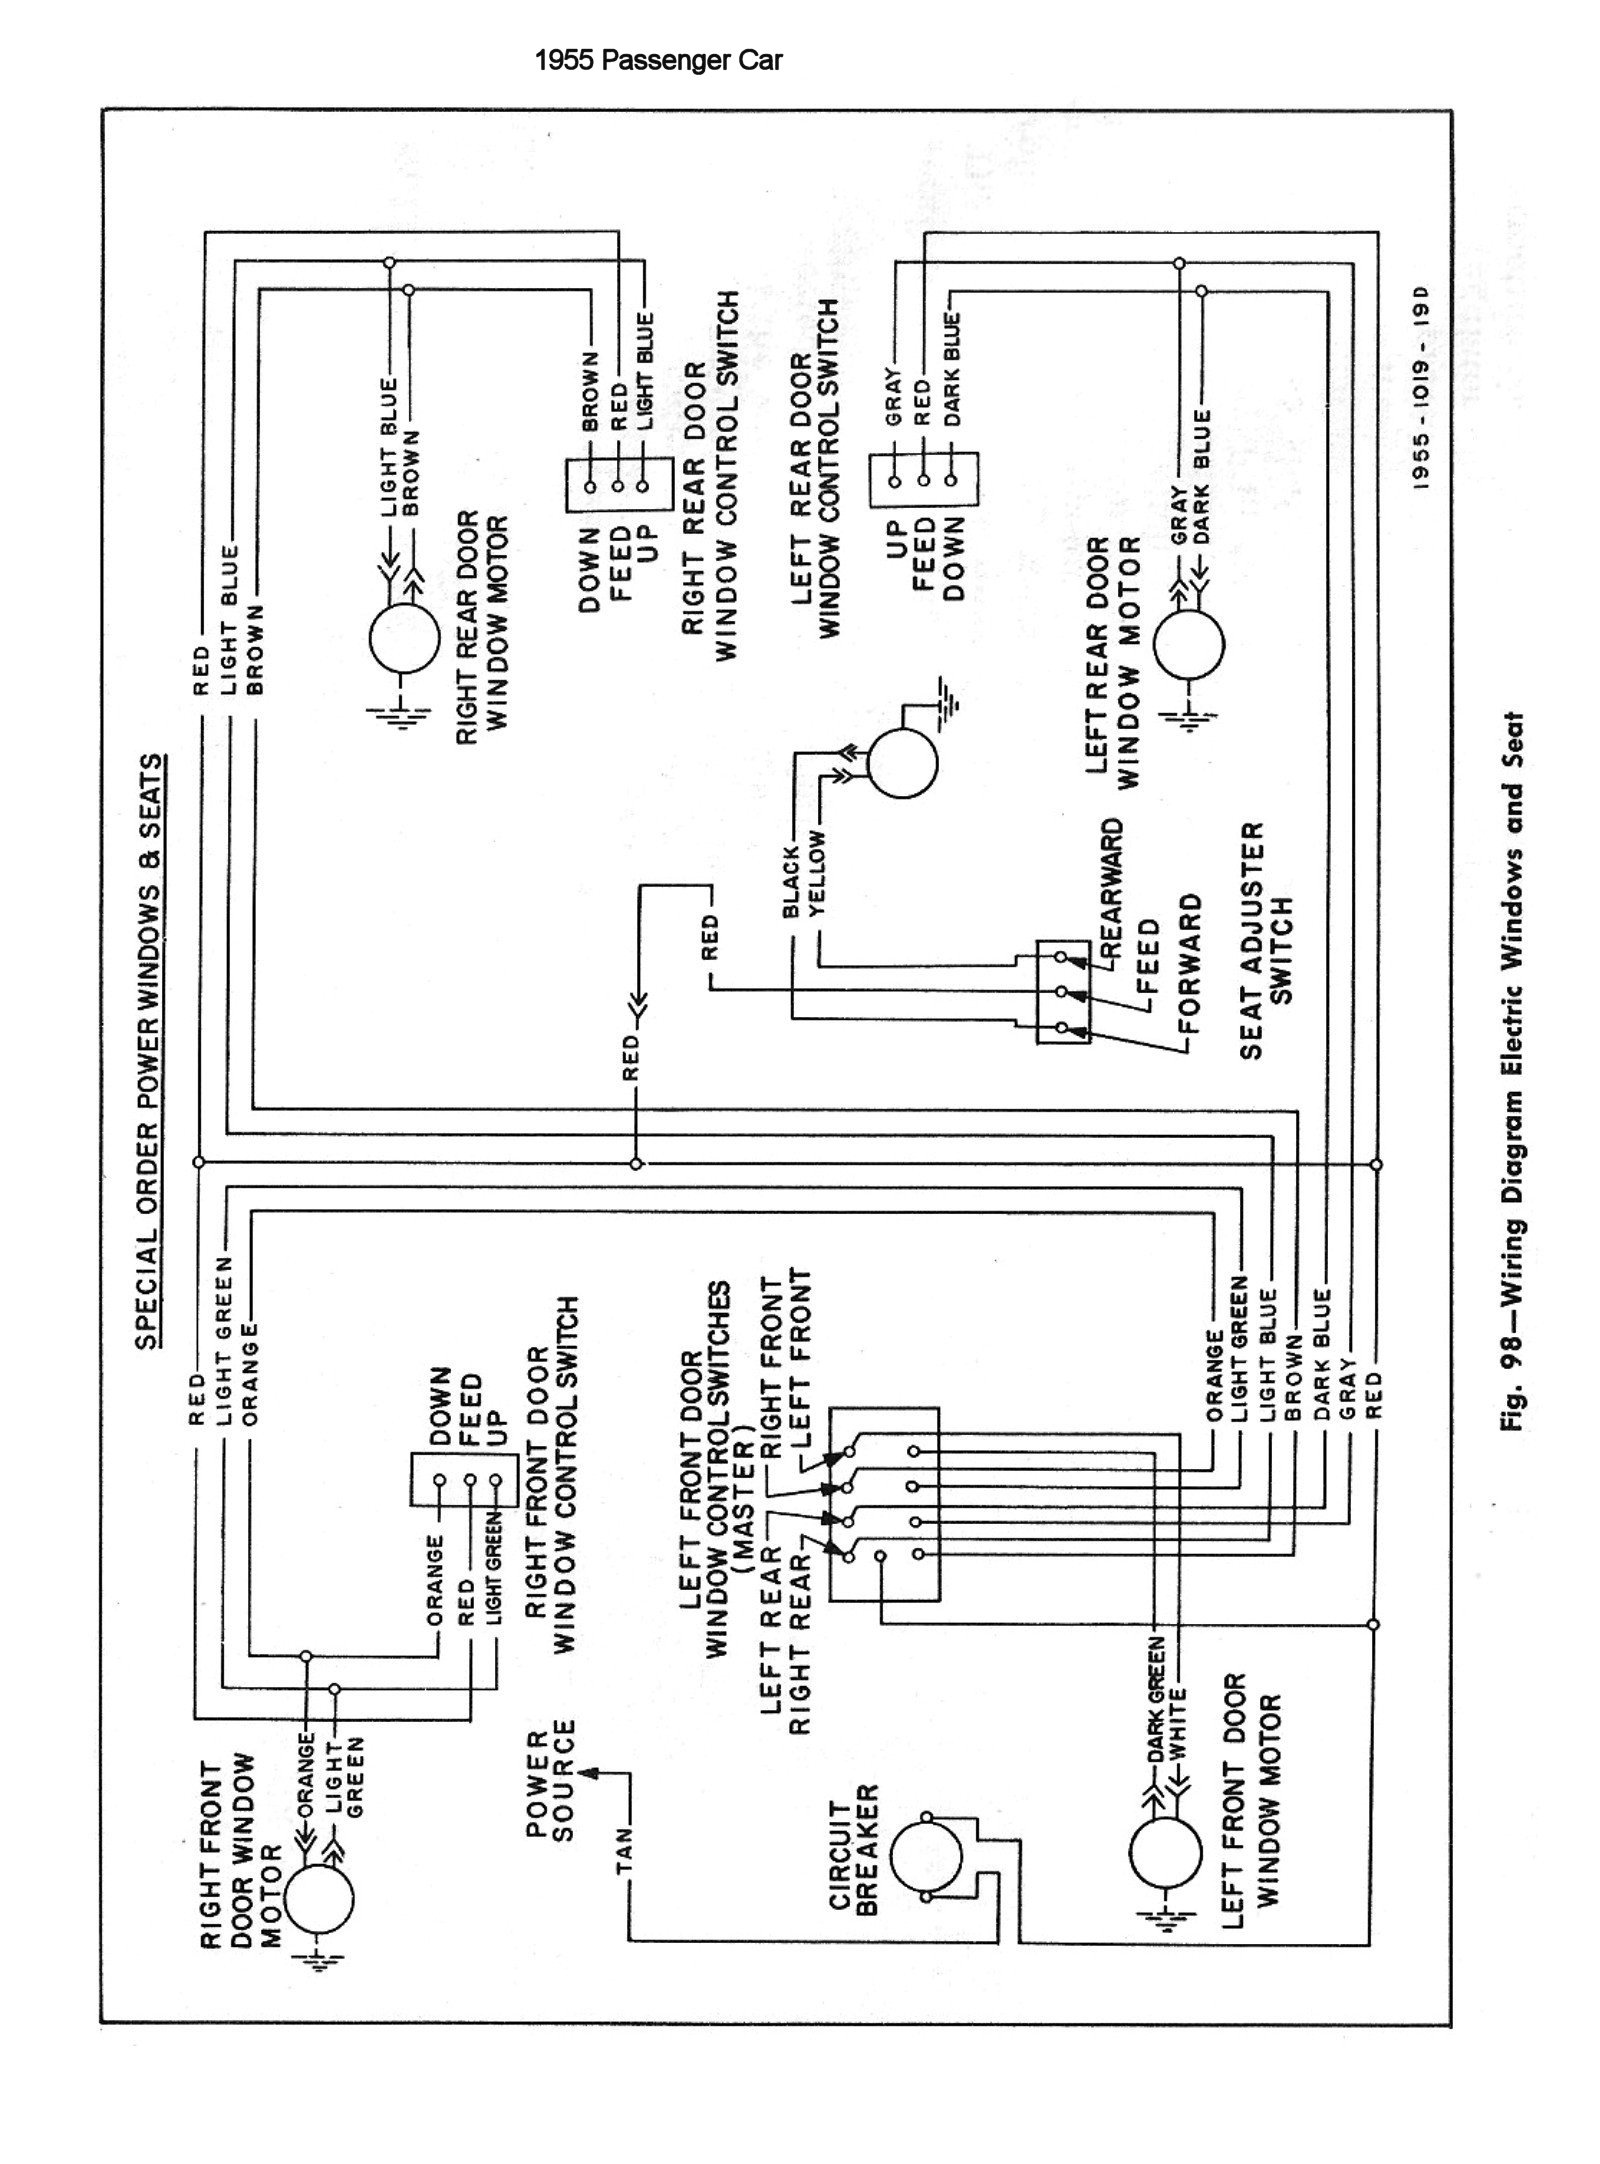 55csm0146 chevy wiring diagrams 85 chevy truck wiring diagram at gsmx.co